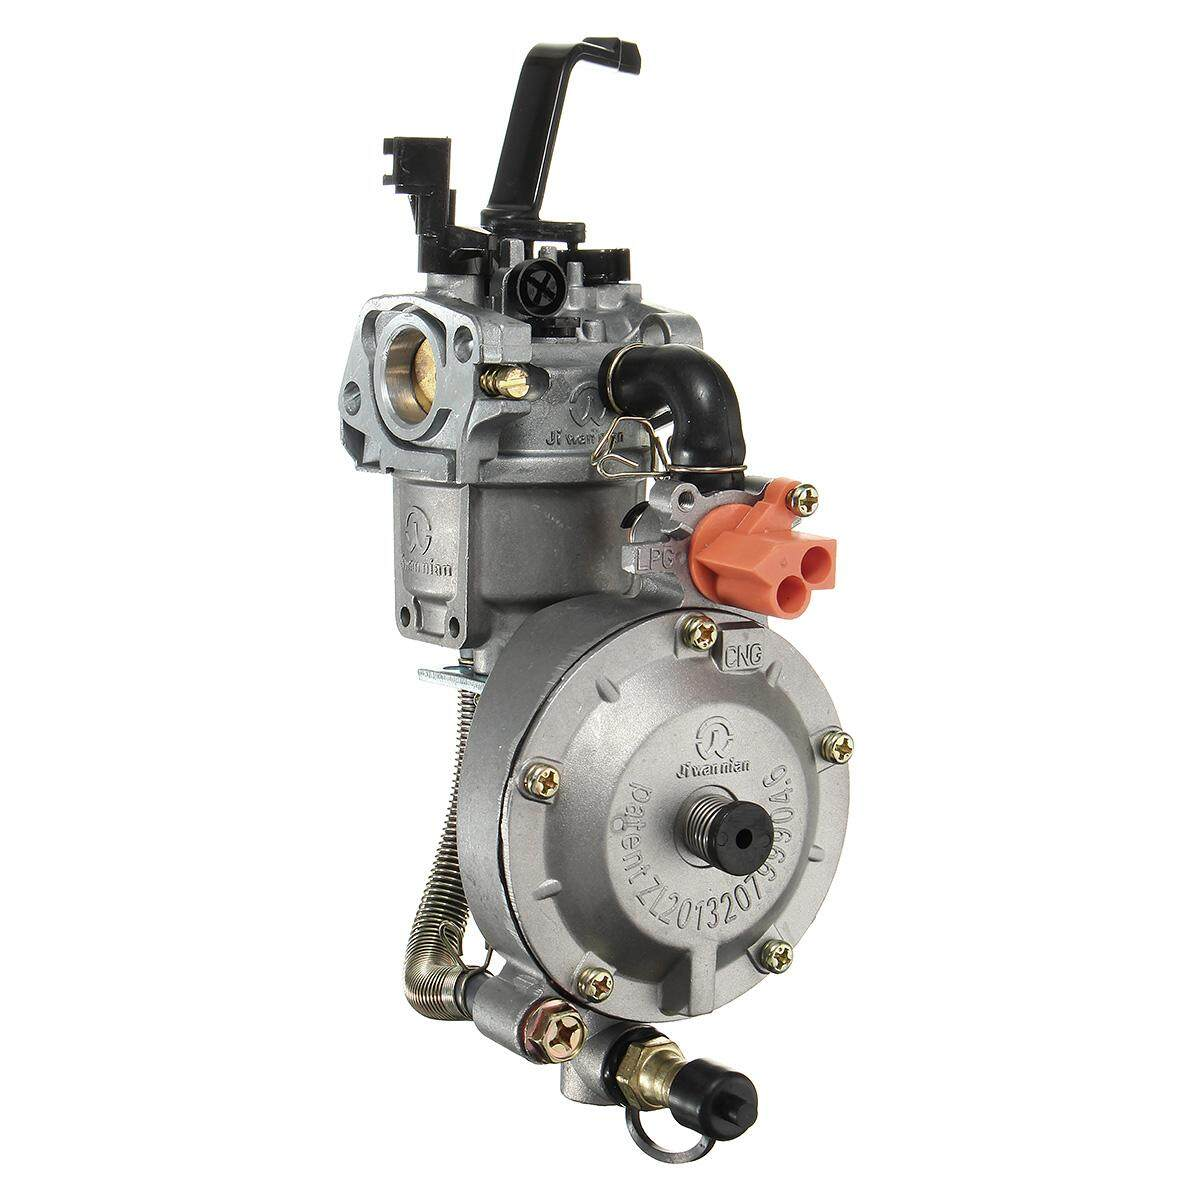 Dual Fuel Carburetor Carb Lpg Ng Conversion Kit For Generator Gx200 170f Engine By Elec Mall.